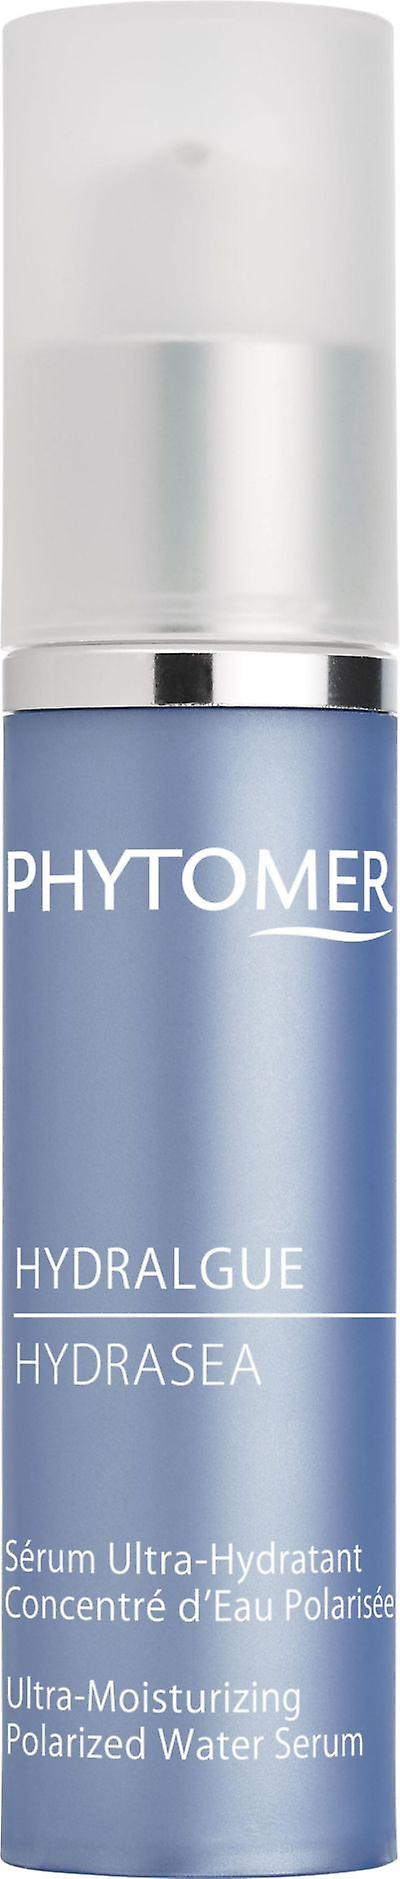 Phytomer Hydra Sea Ultra Moisturising Polarised Water Serum